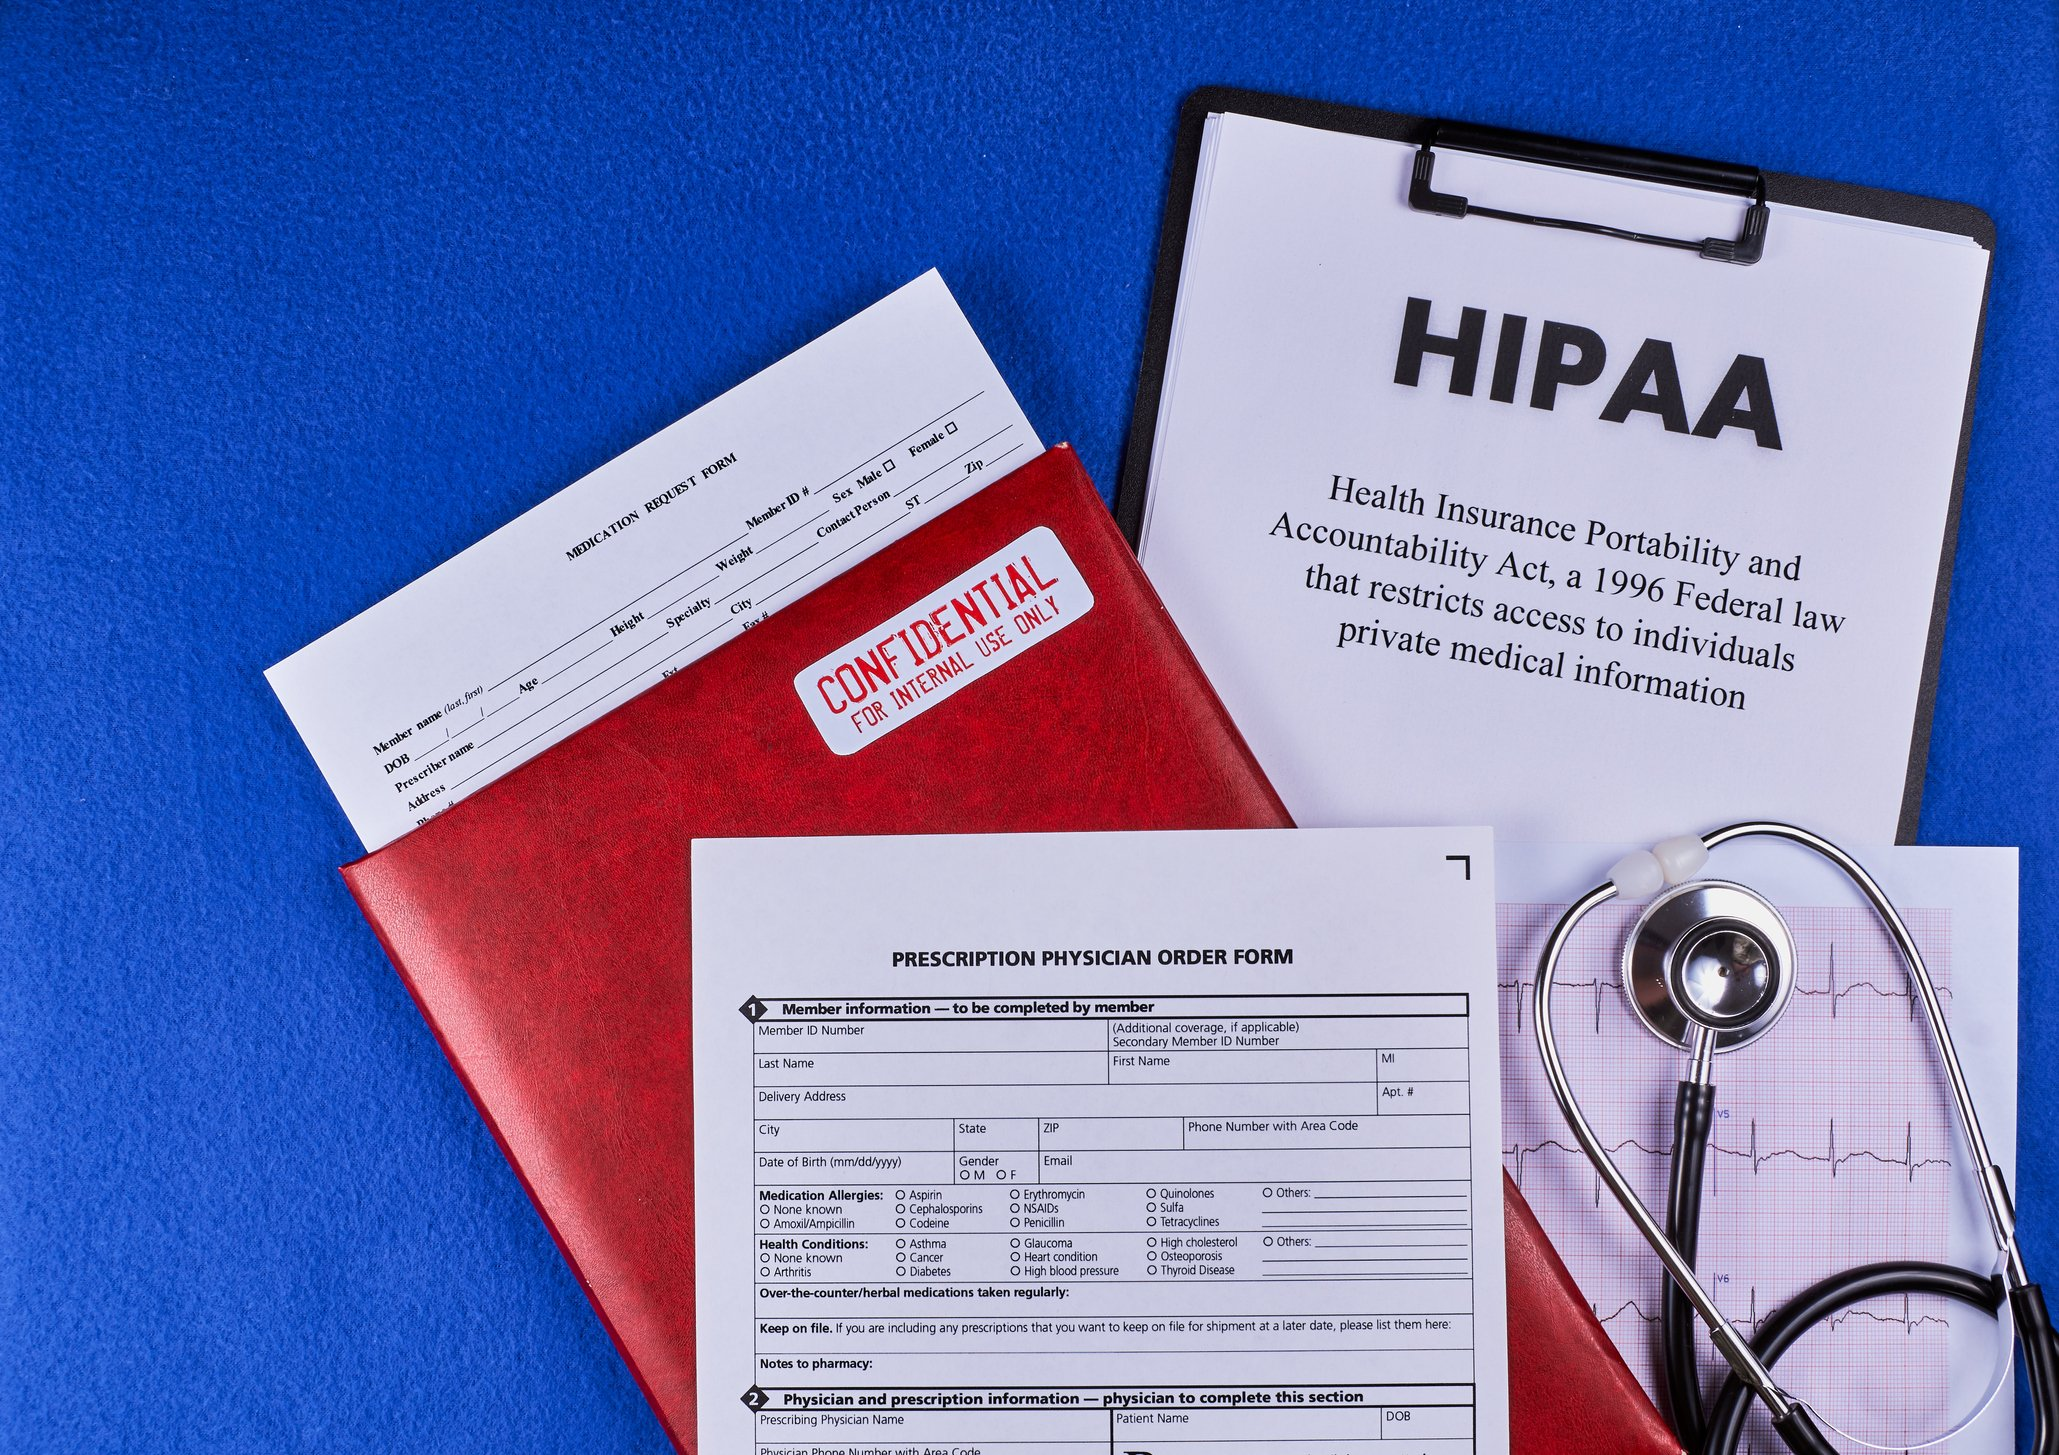 HIPAA paperwork and folders on a blue background with a stethoscope.